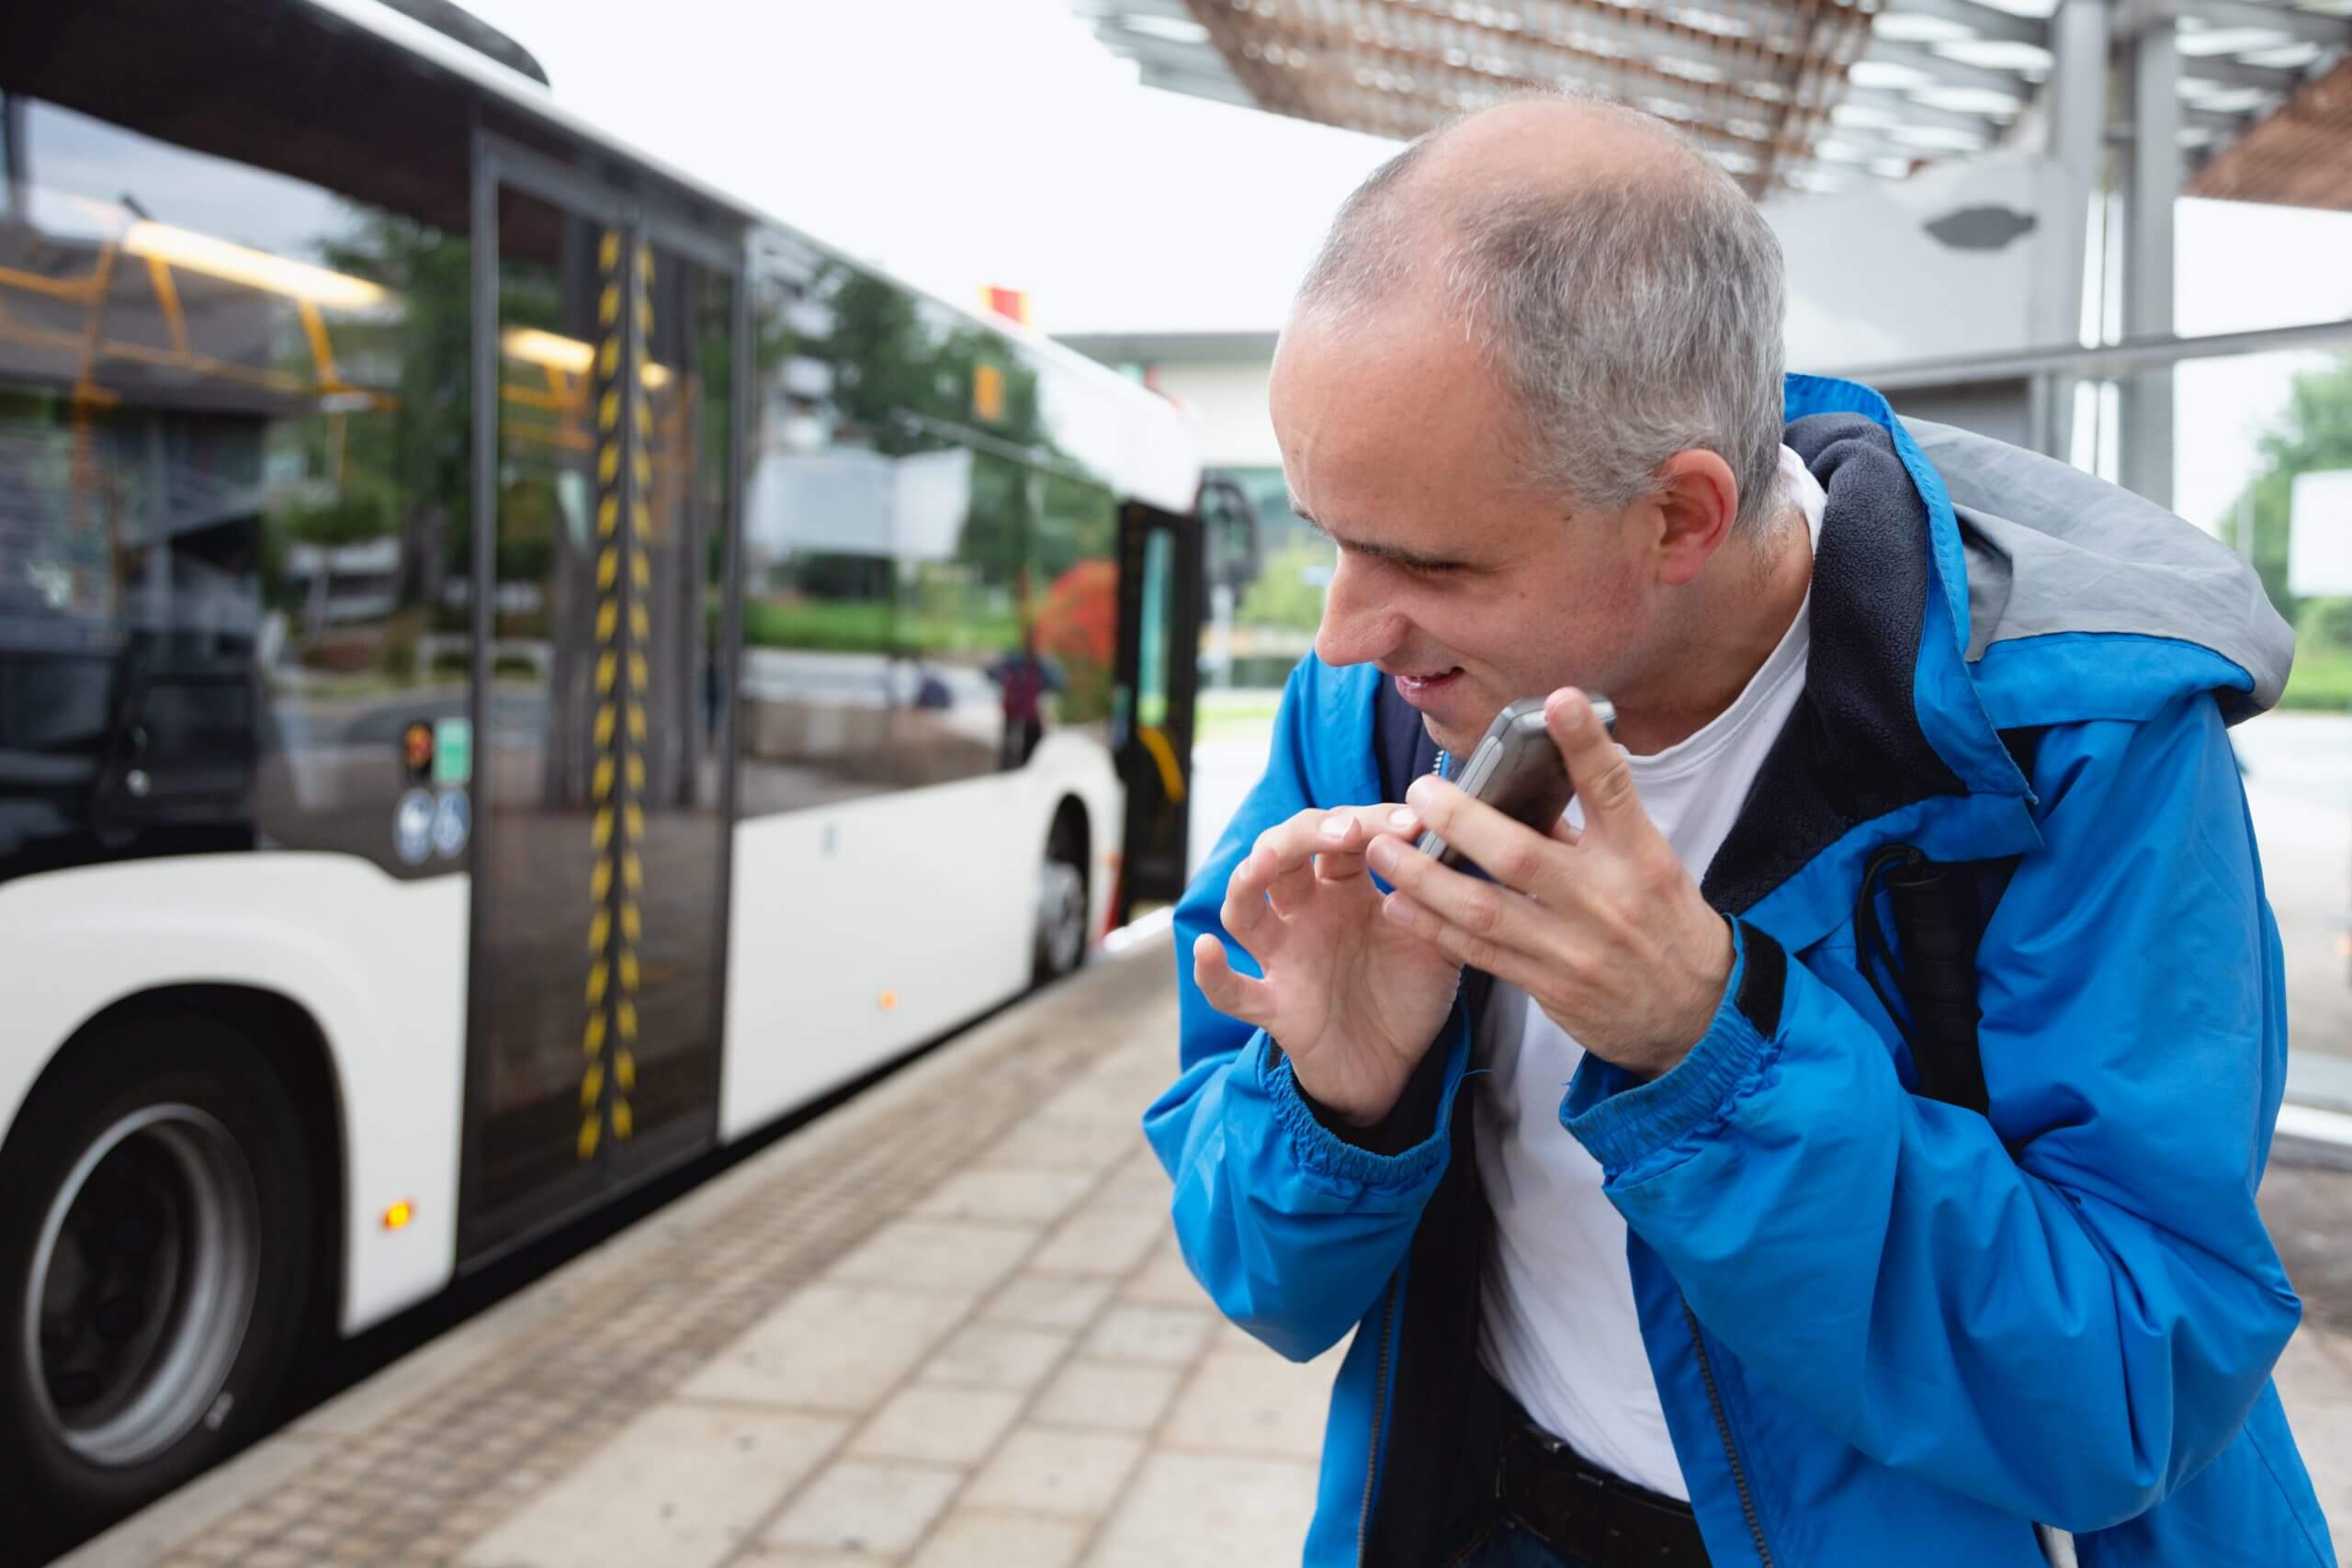 Blind man listening to his smartphone at a bus station